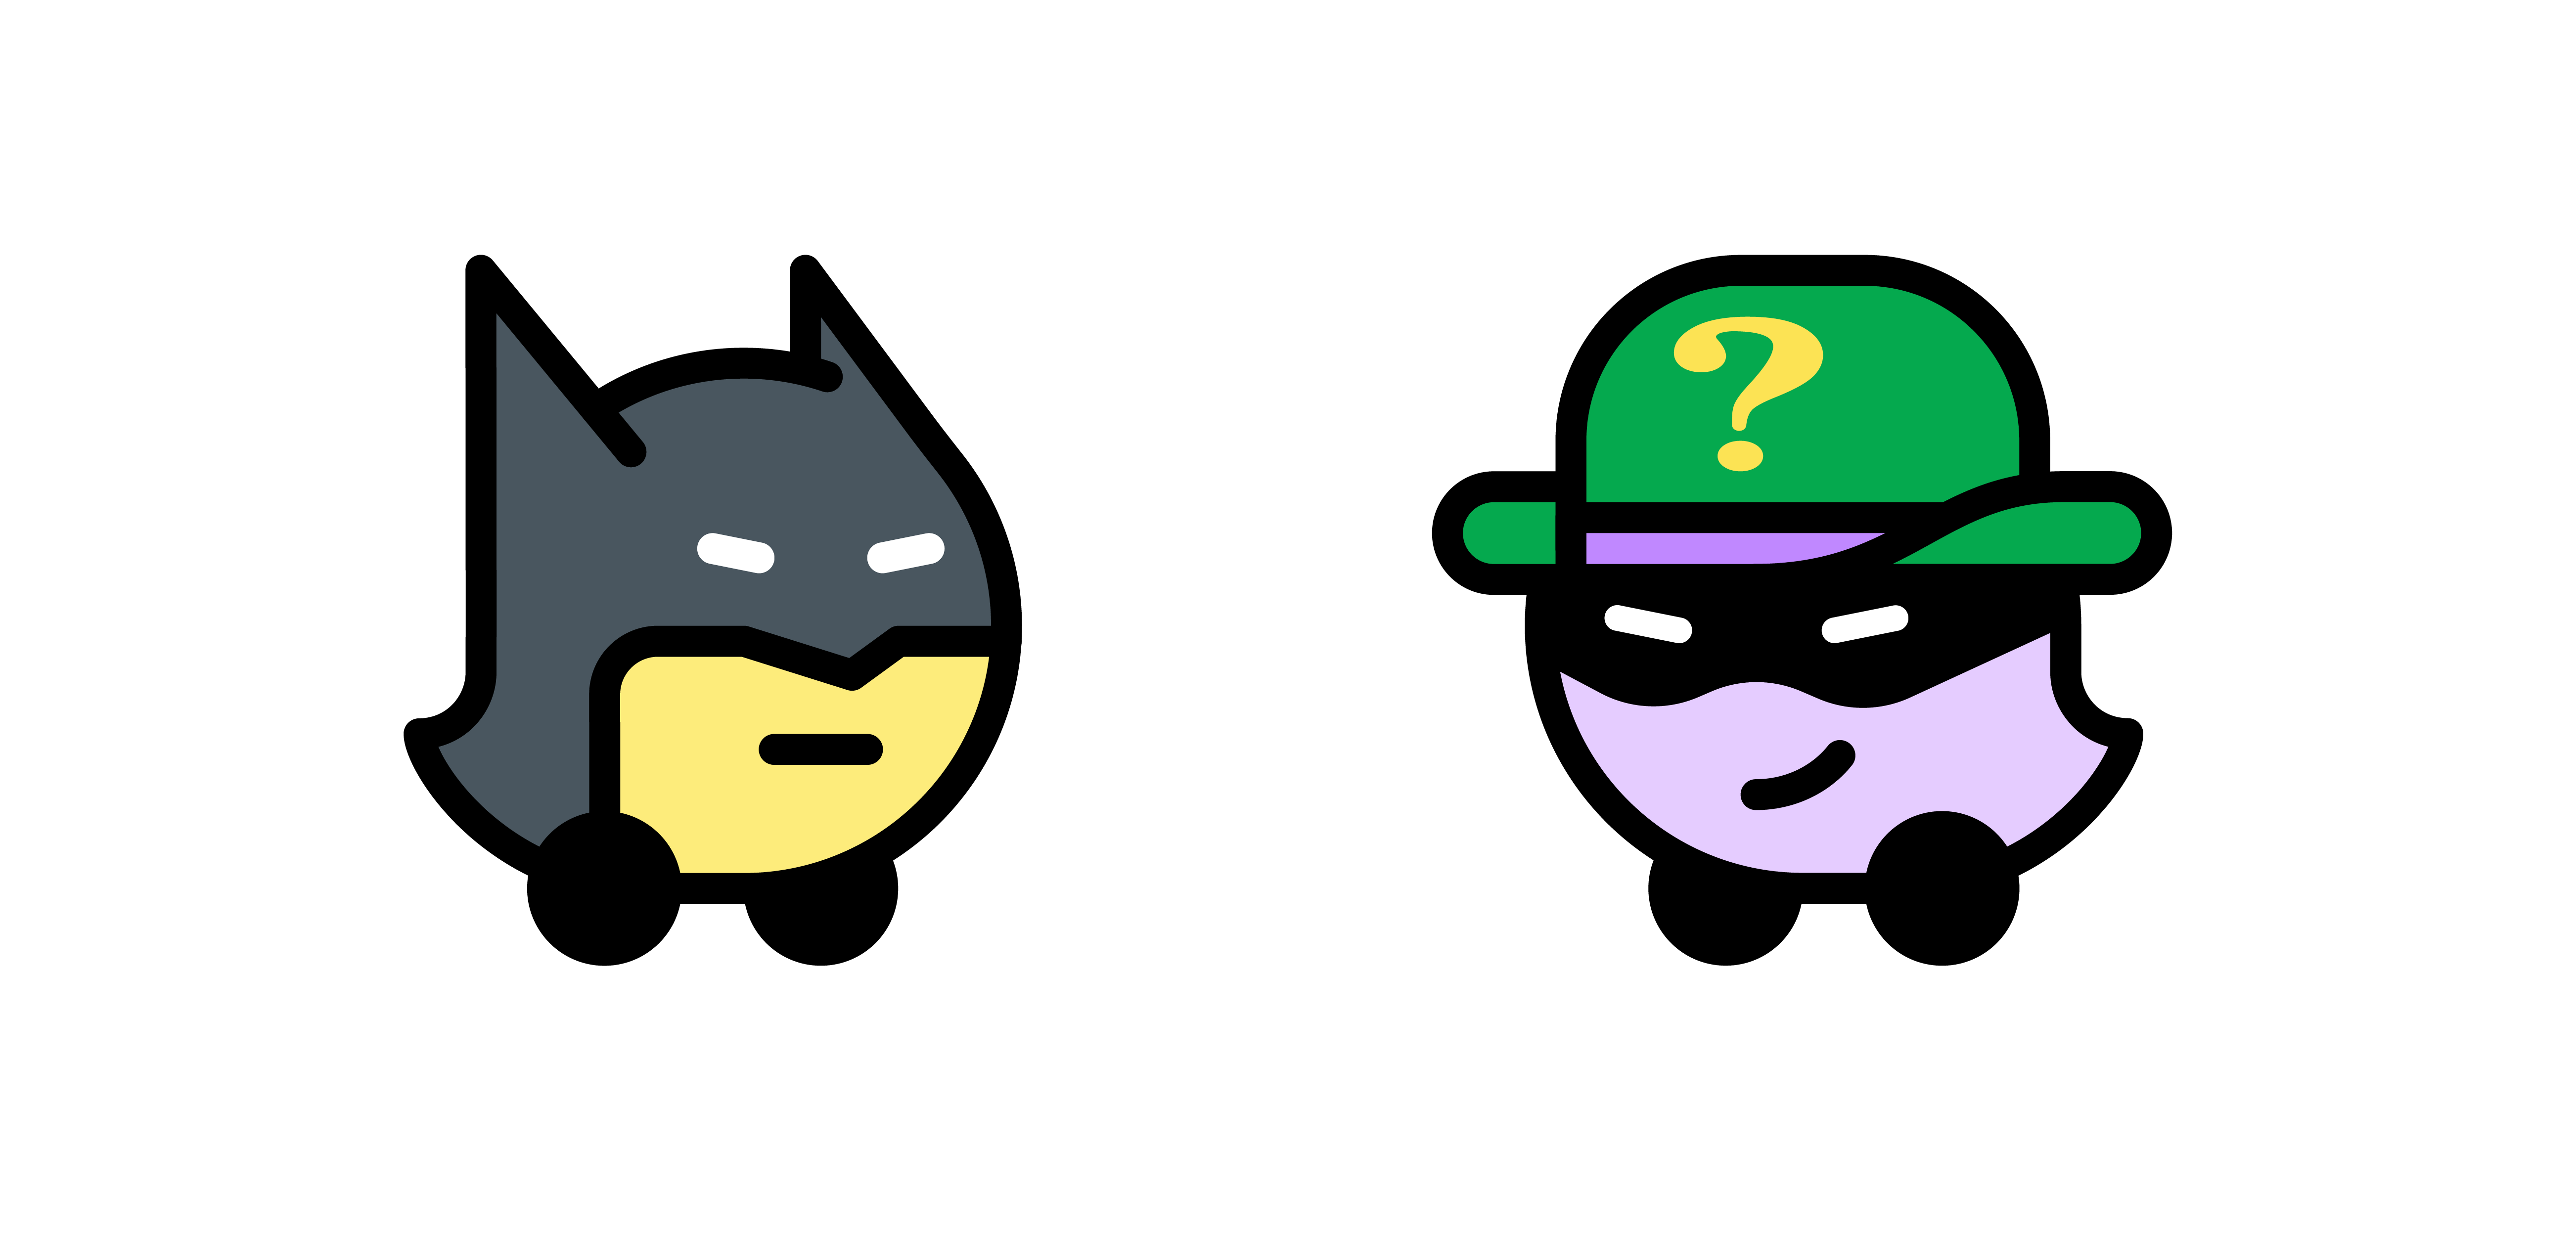 Partnership with Warner Bros. Consumer Products and DC brings Batman and The Riddler to Waze